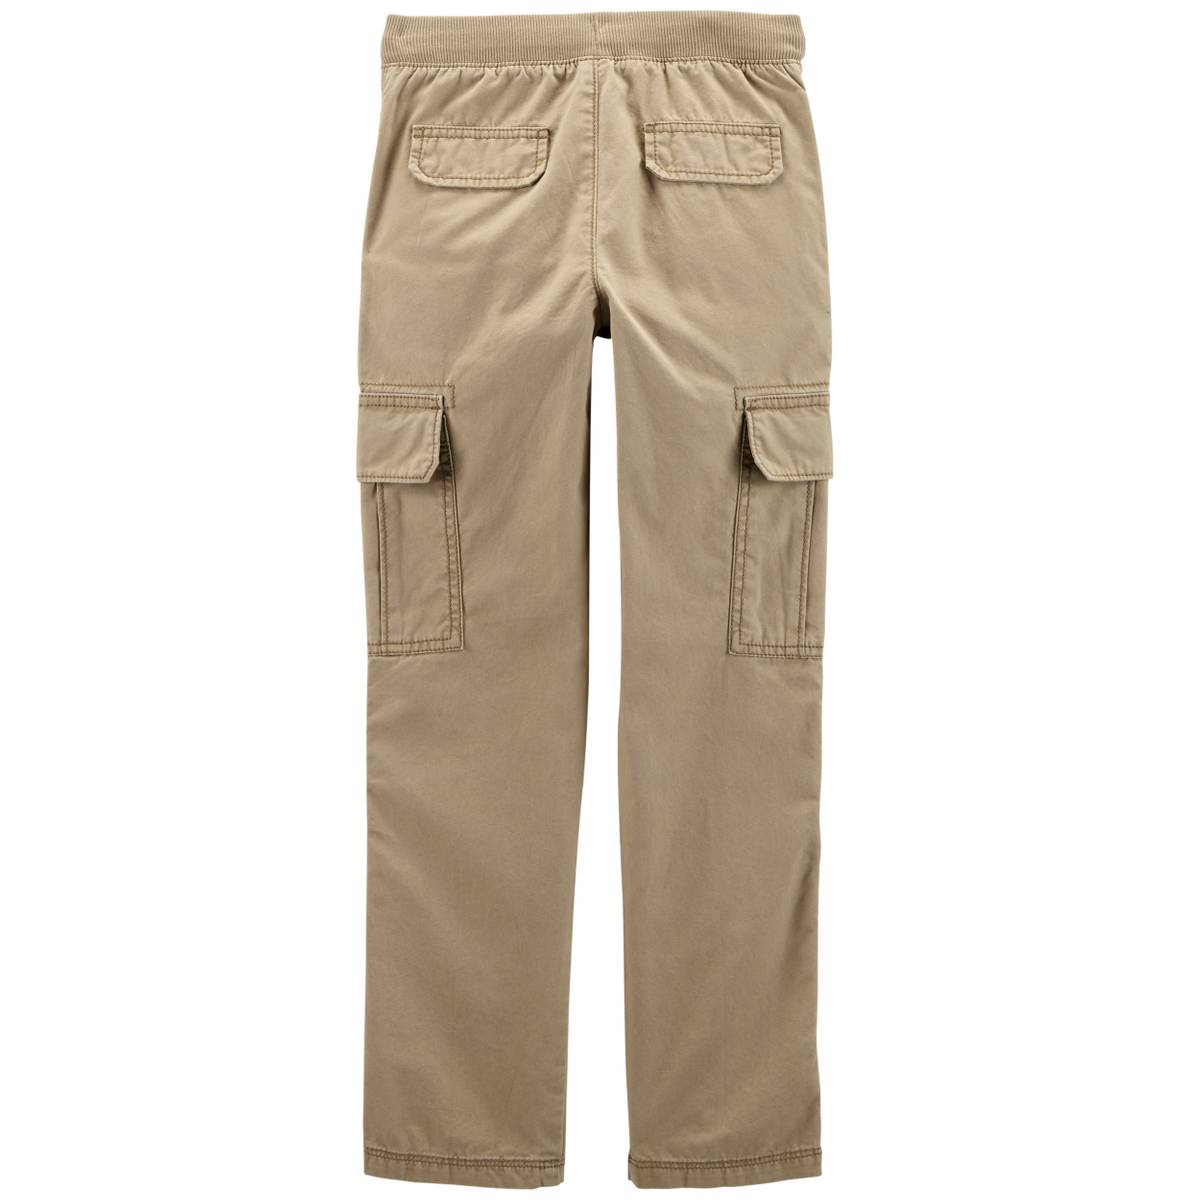 29ce3e602 Carter's Big Boys' Khaki Canvas Pants